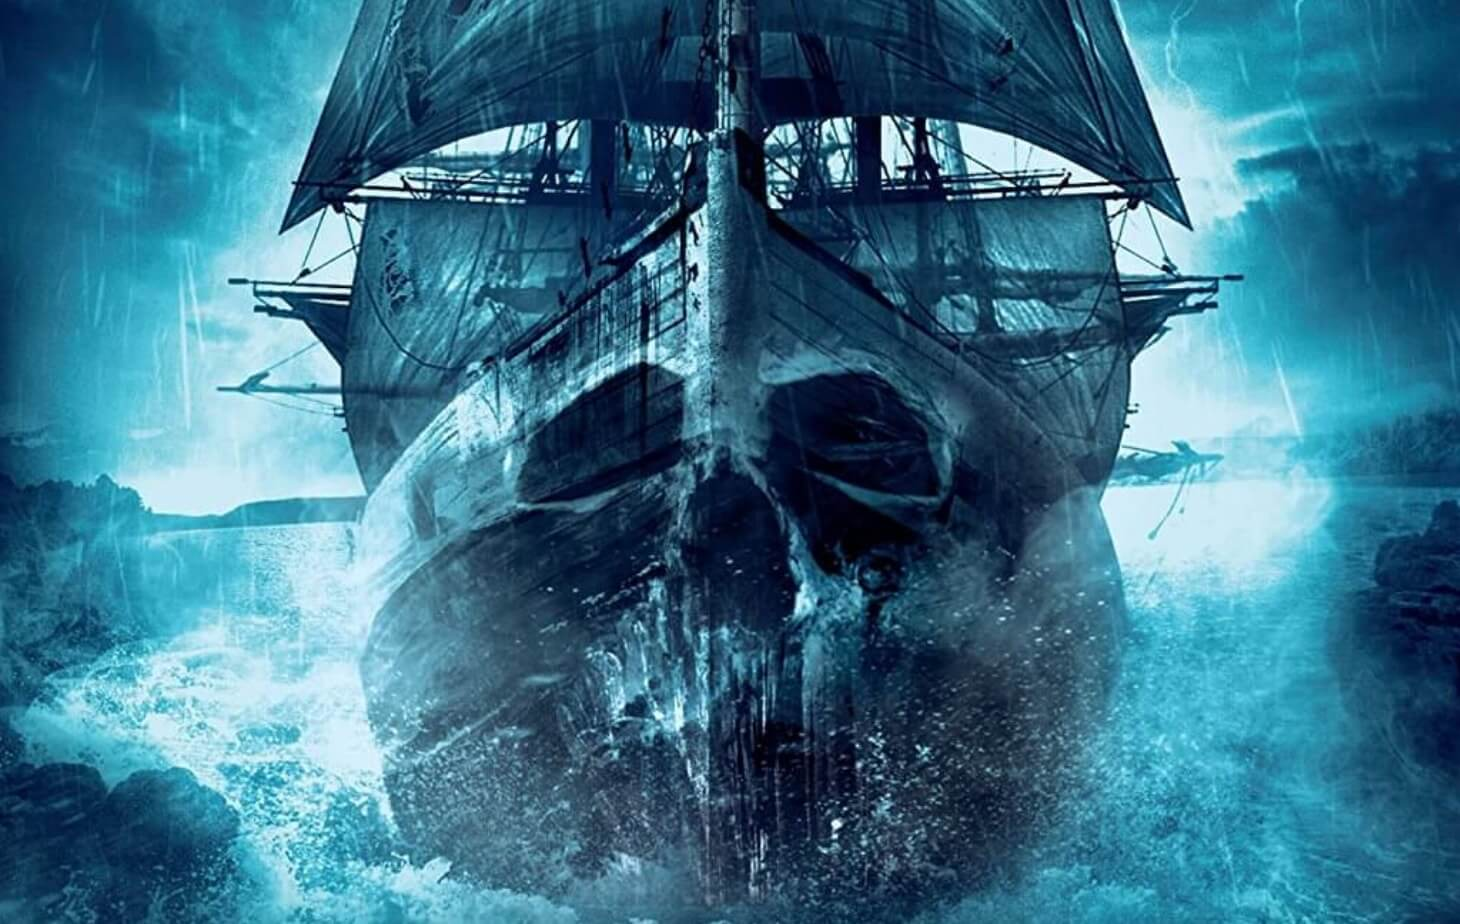 Image result for Ghost ship images